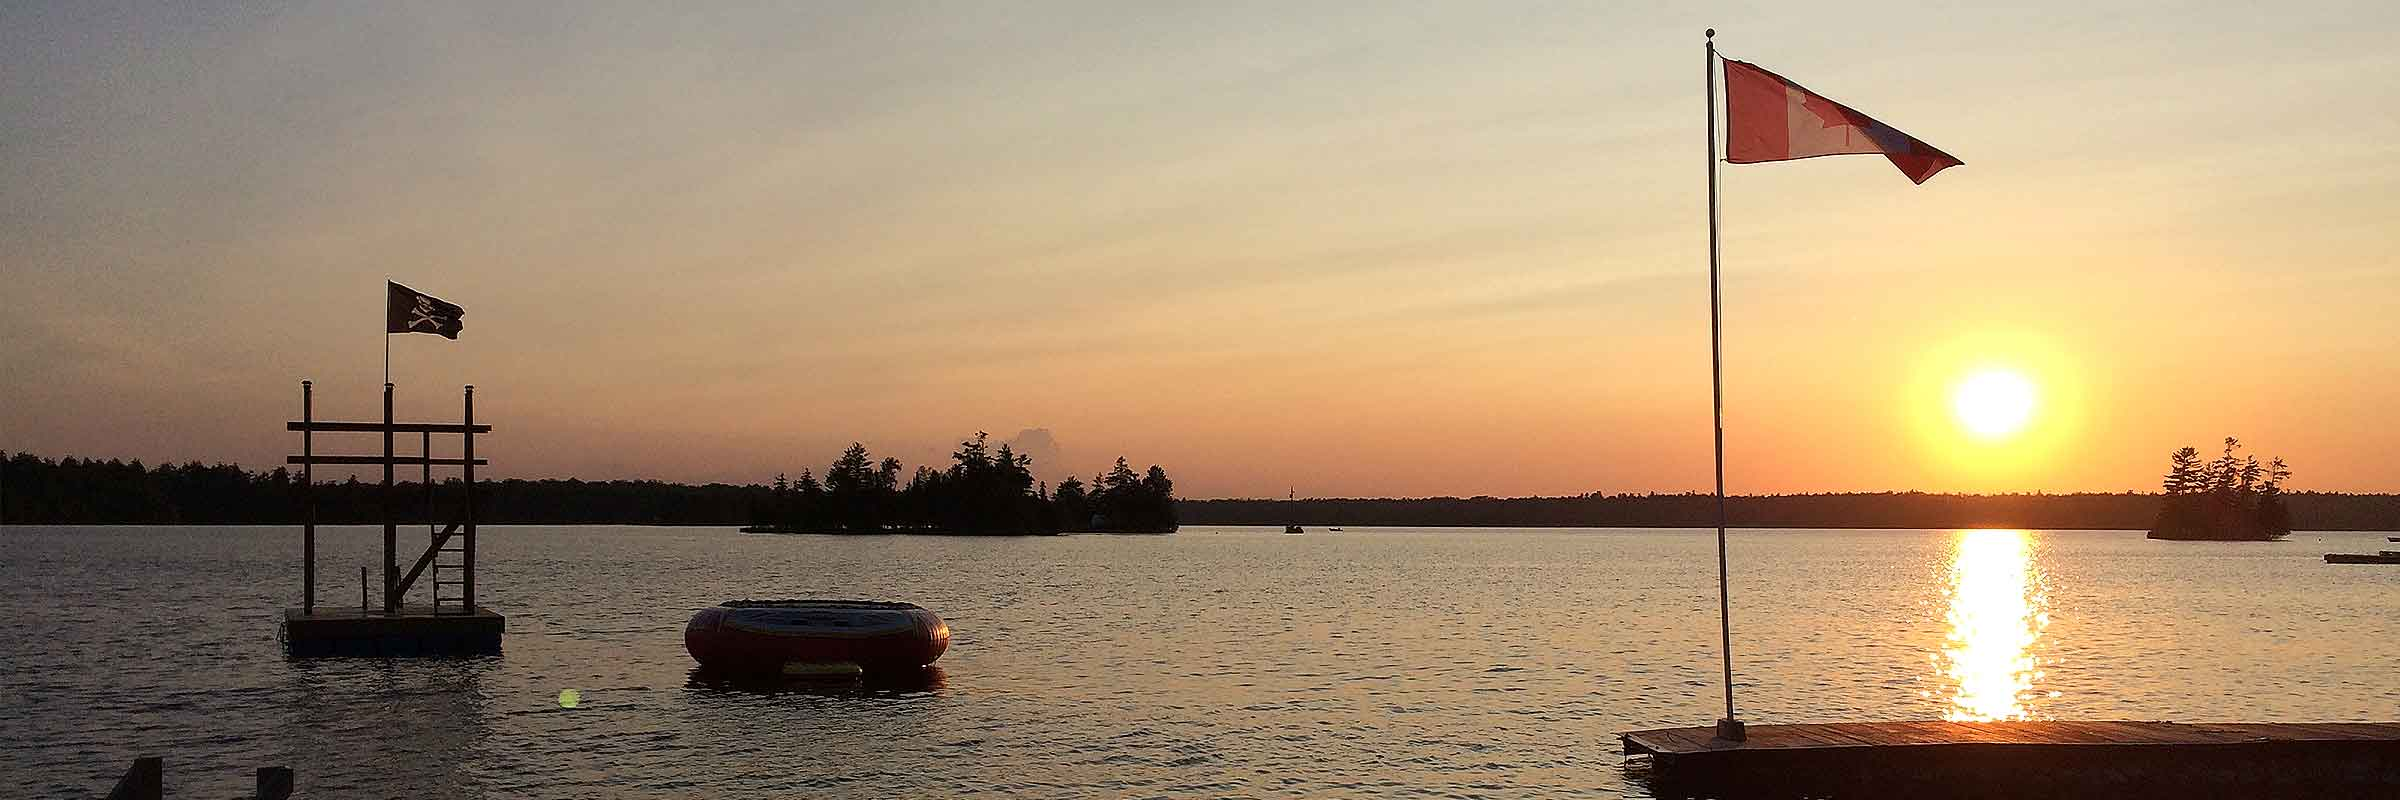 sunset on Pickerel Bay, White Lake